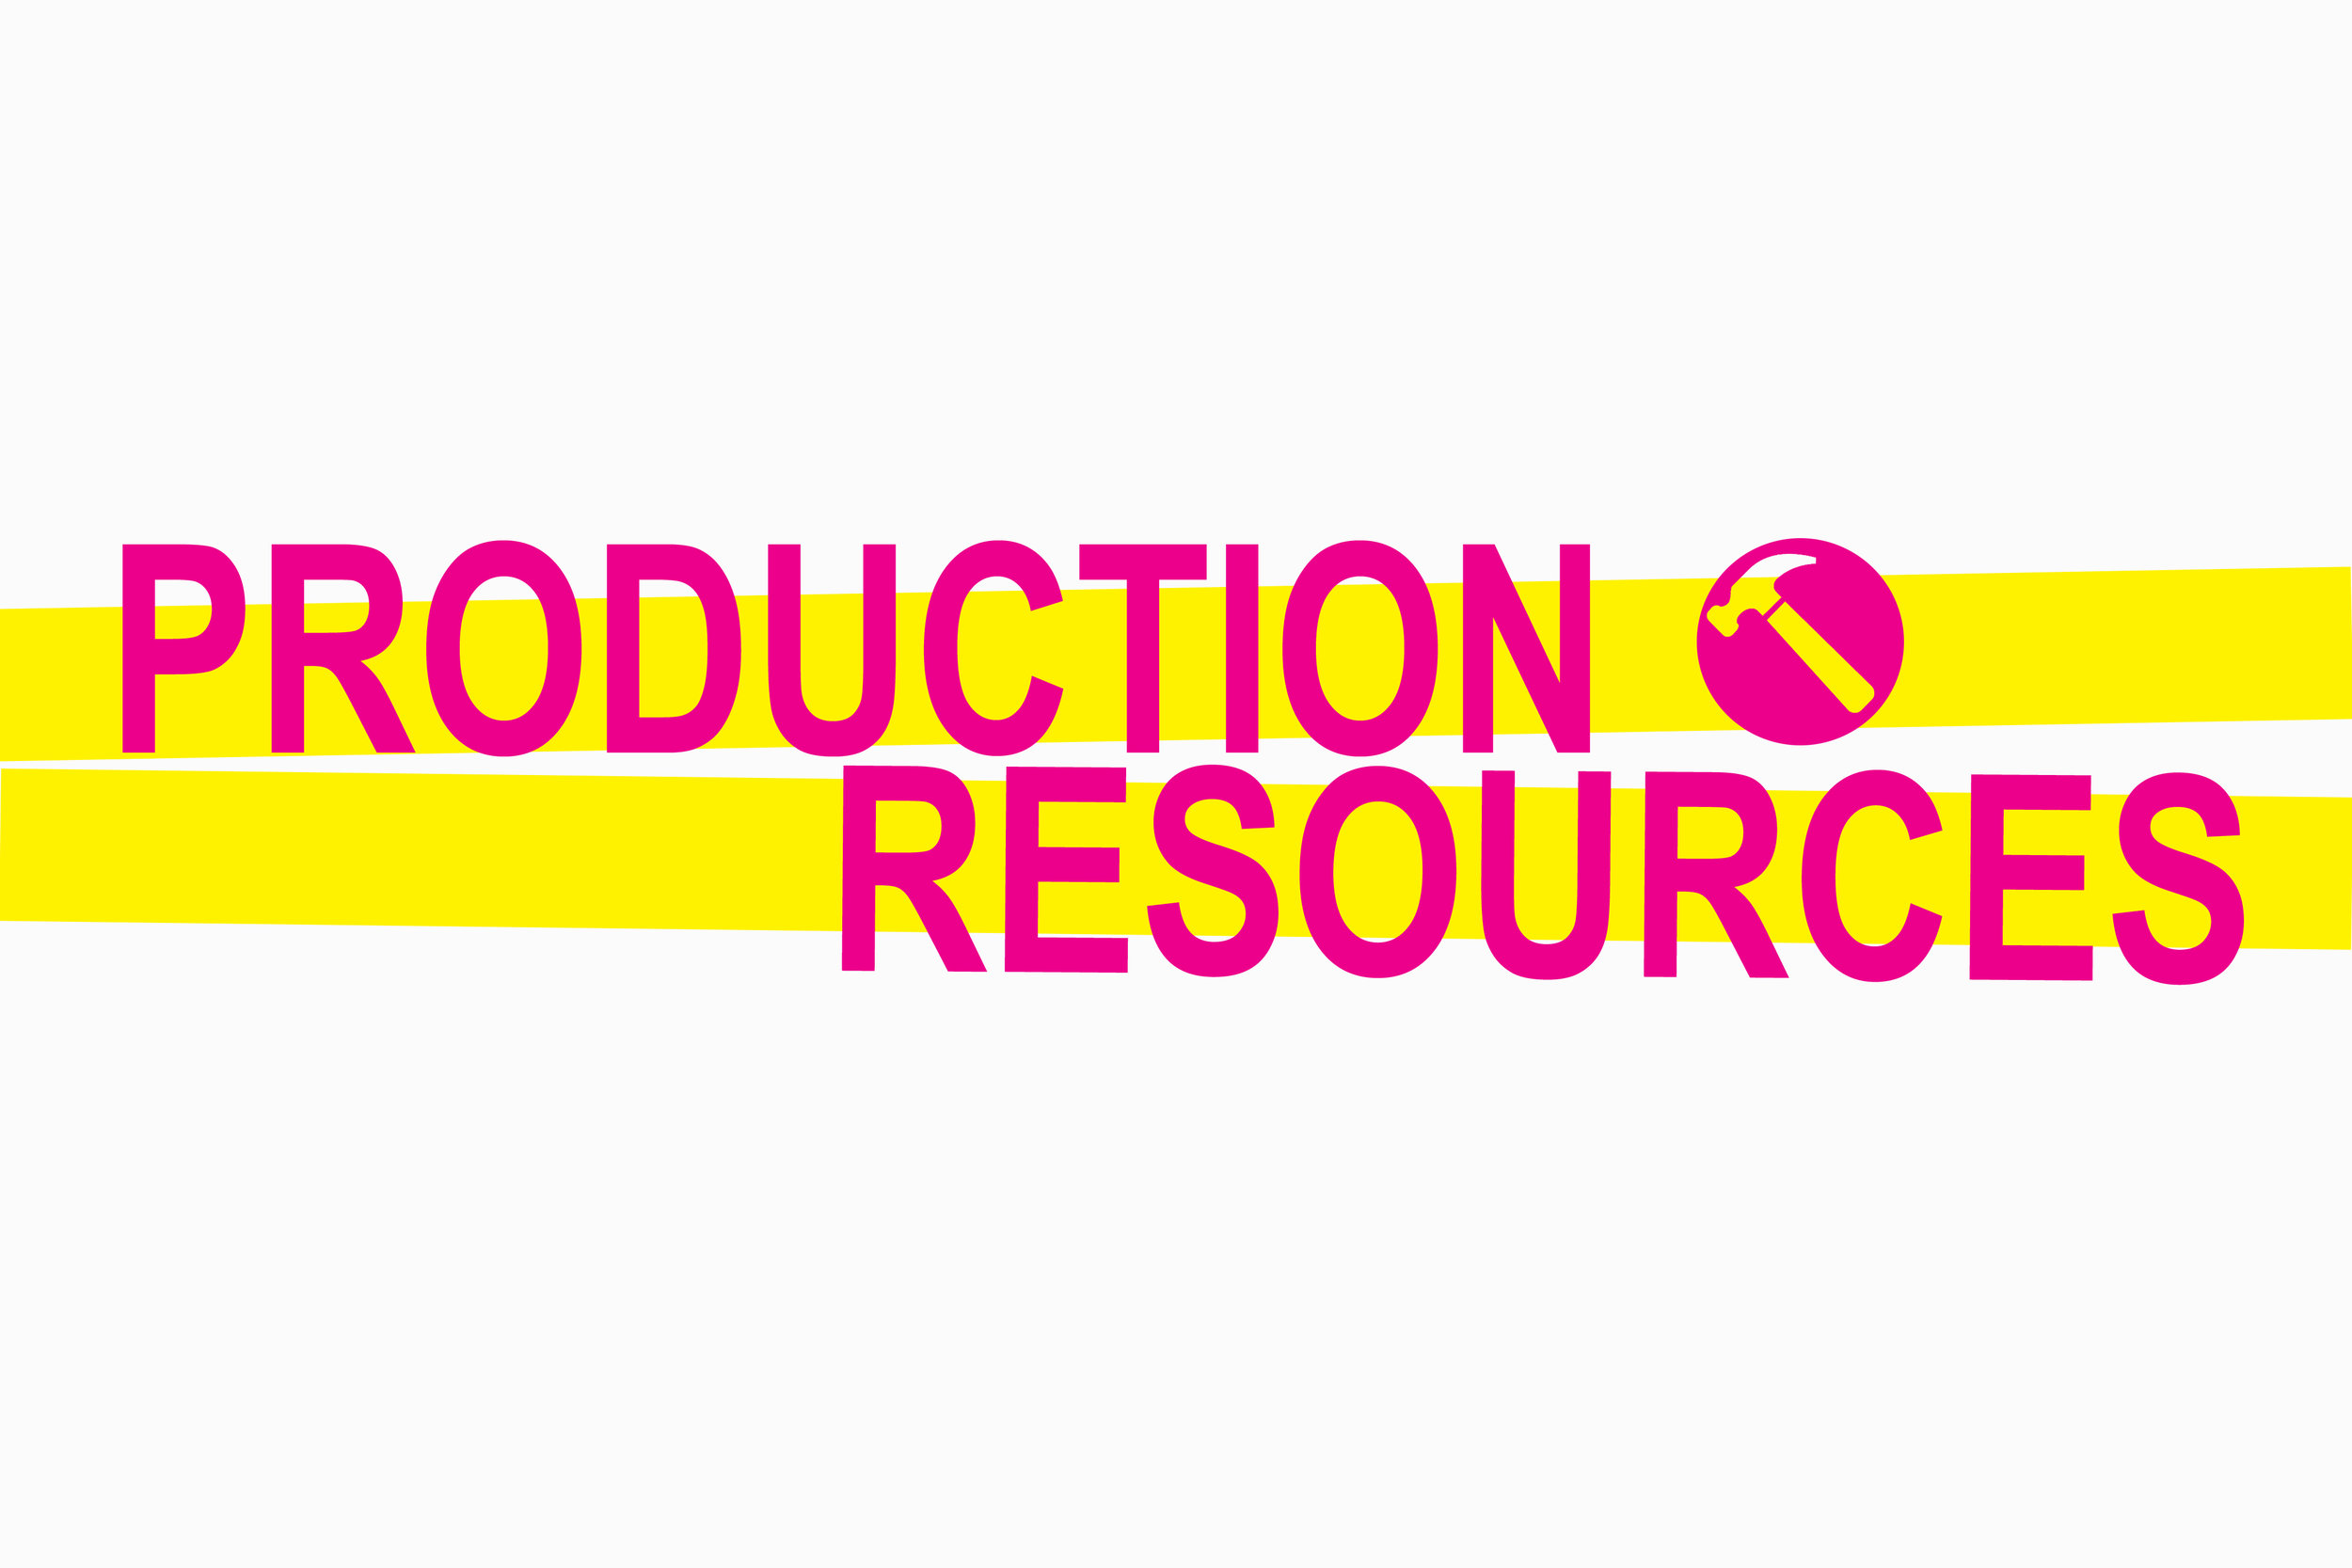 Design Toolkit PRODUCTION RESOURCES logo.jpg